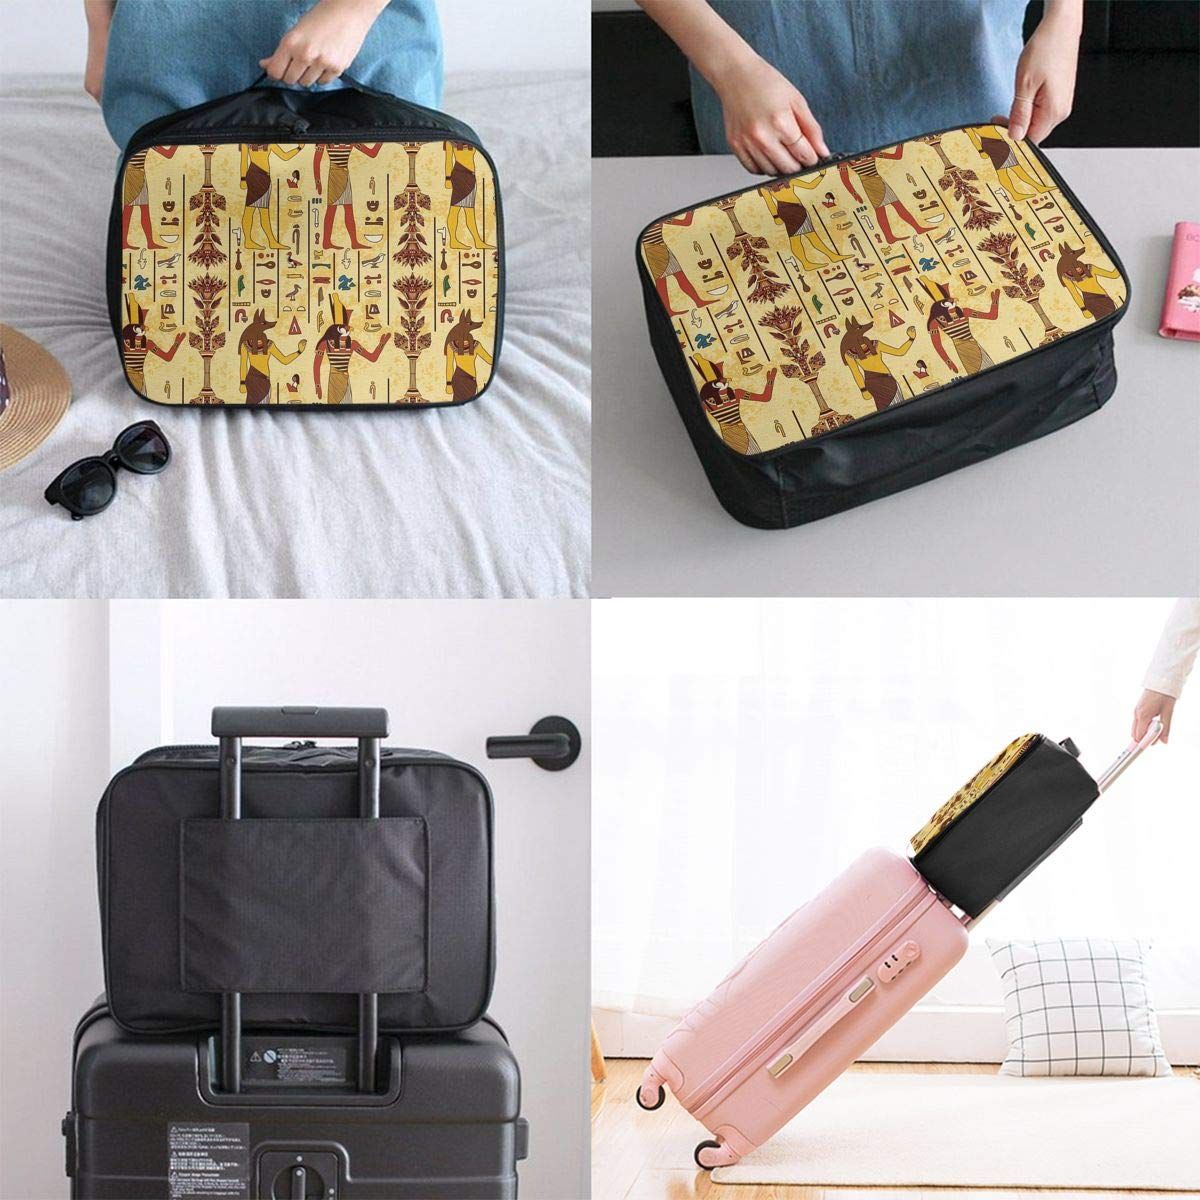 ADGAI Grunge Aged Paper Style Backdrop Canvas Travel Weekender Bag,Fashion Custom Lightweight Large Capacity Portable Luggage Bag,Suitcase Trolley Bag